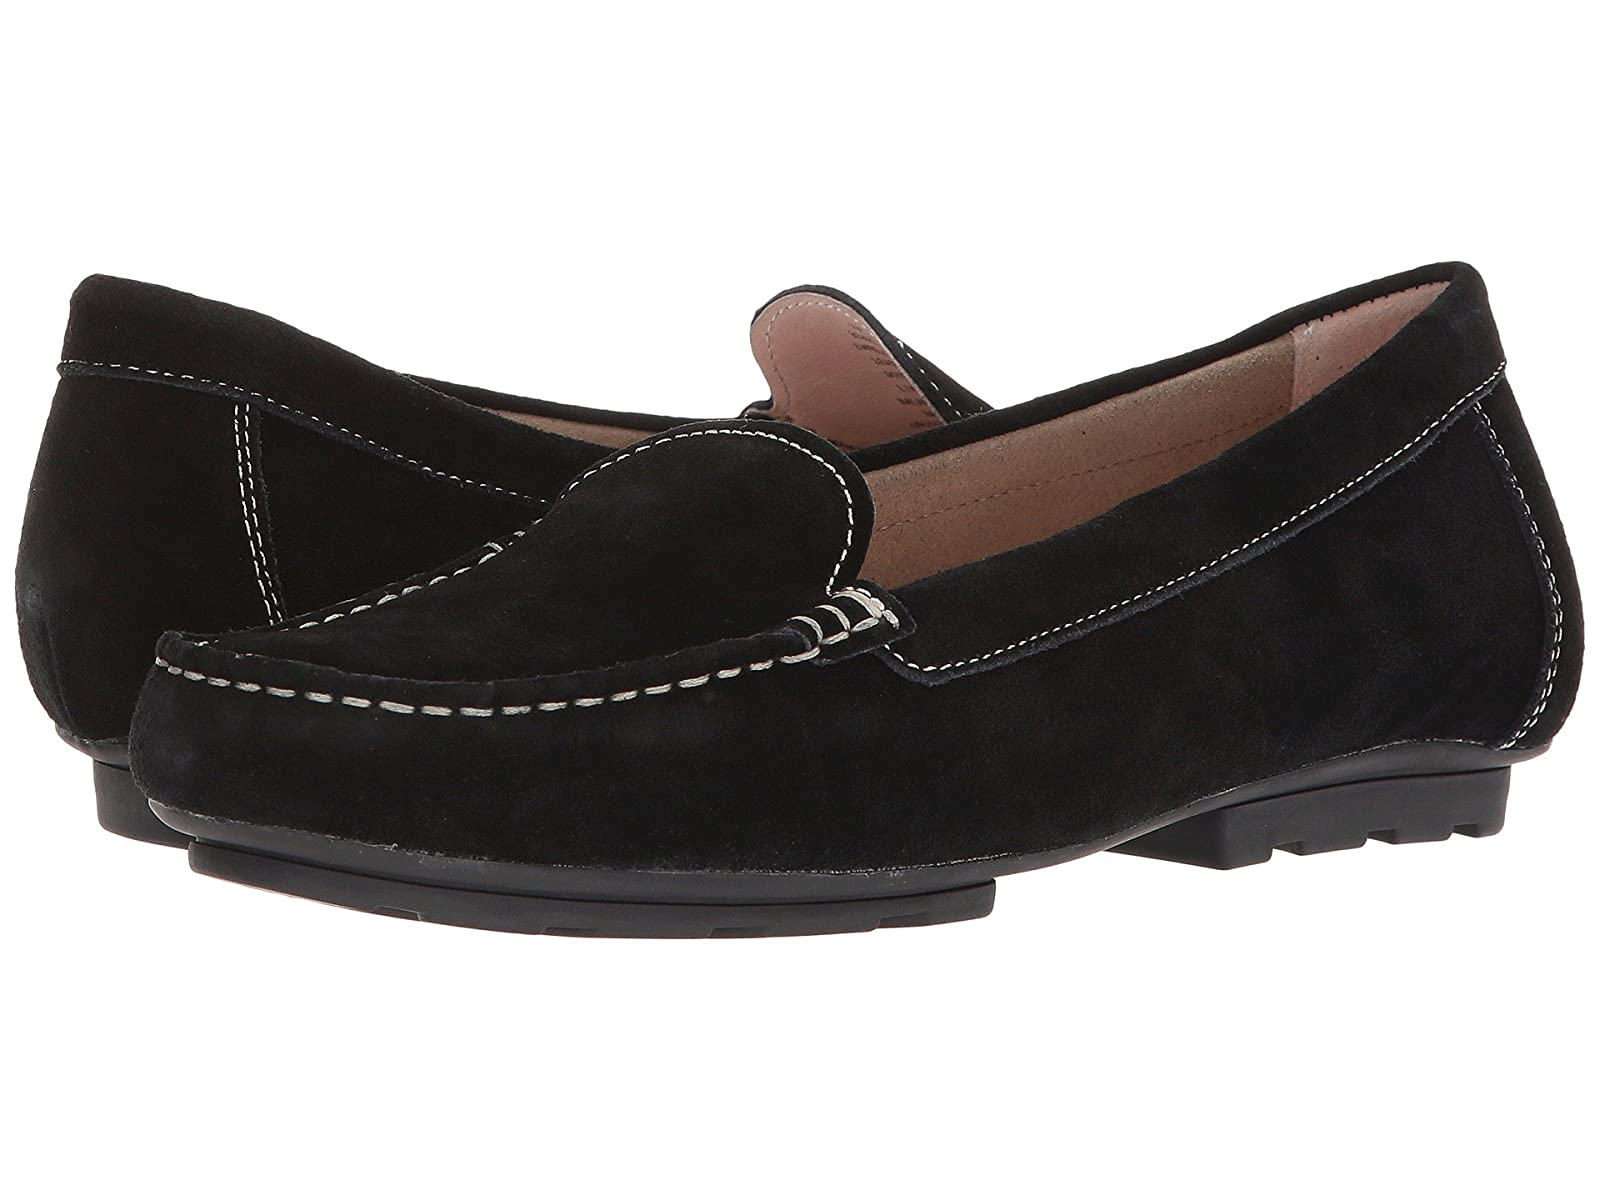 Blondo Dale Waterproof LoaferAtmospheric grades have affordable shoes